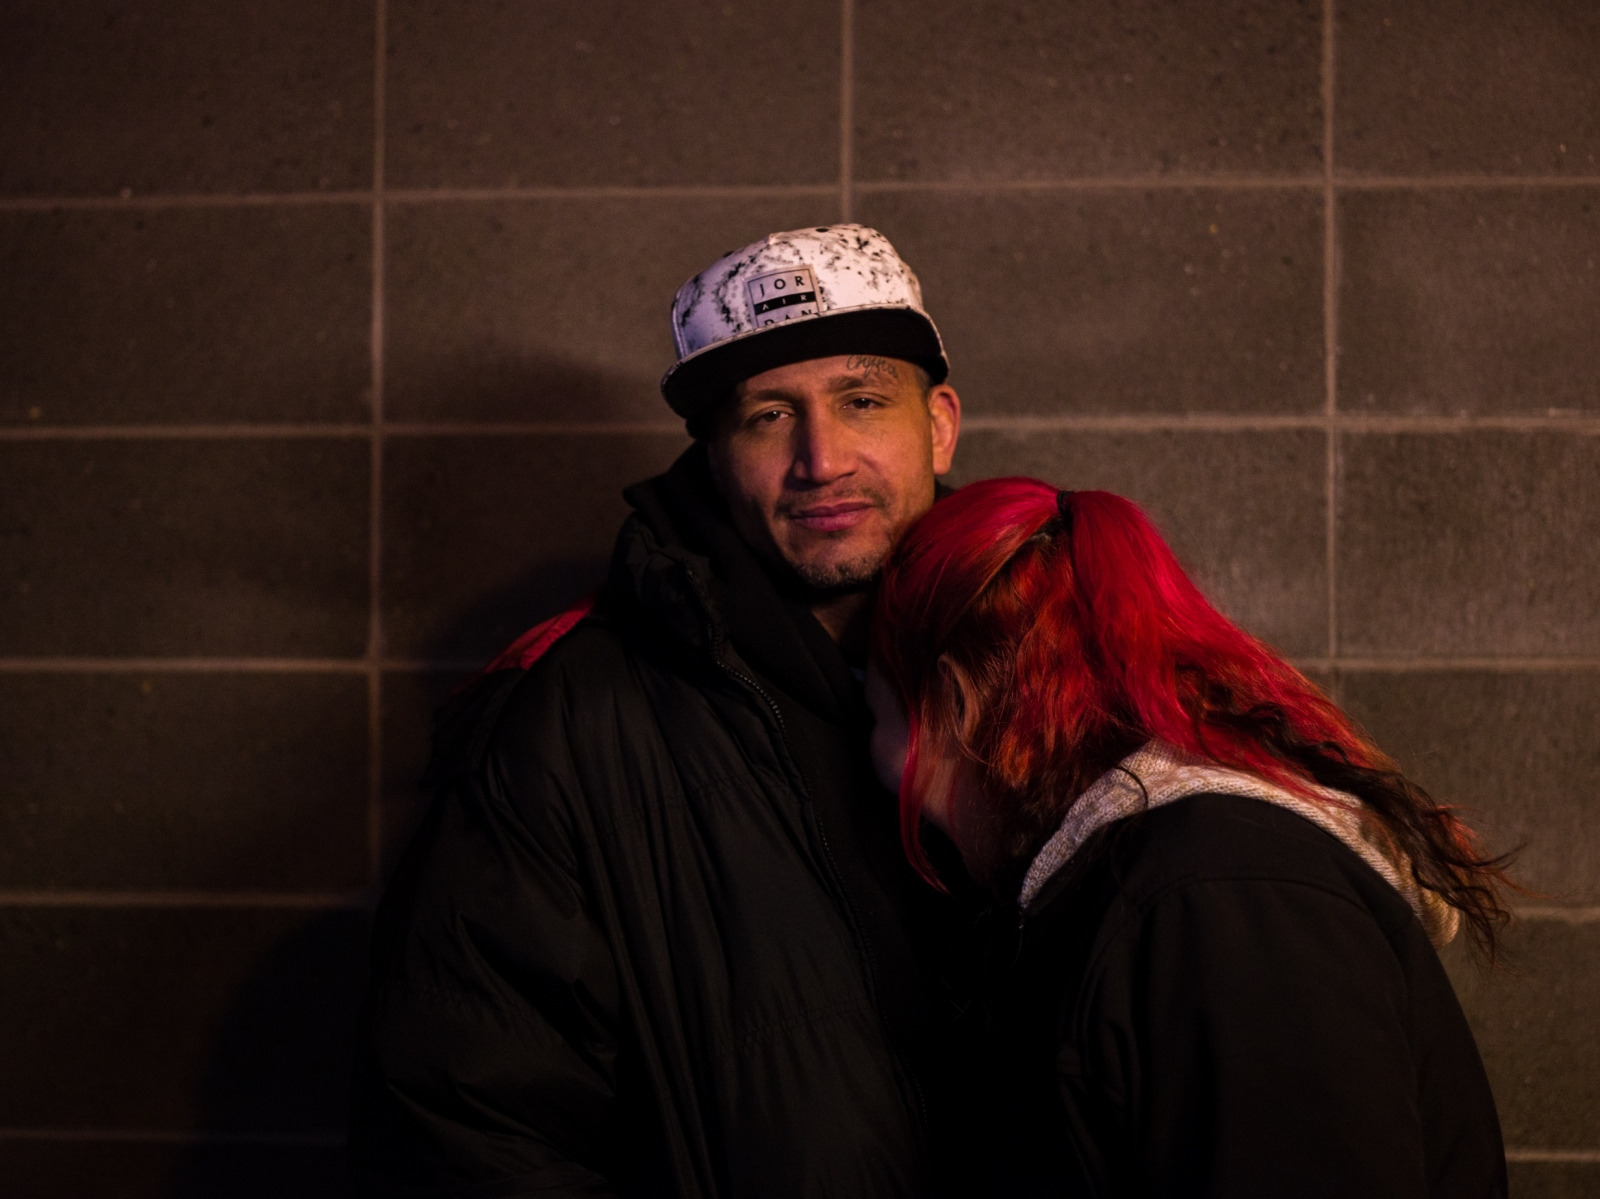 Michael Charles, 39, and Gabriella Tinker, 23, stand together outside of Brother Francis Shelter. Tinker has been homeless since she was a teenager. Charles came up to Alaska from California recently to work in commercial fishing, and stayed after the season ended. Charles says he is now looking for work. The couple say they were married a few months ago but have never had a photograph made of them together. (For the Guardian.)